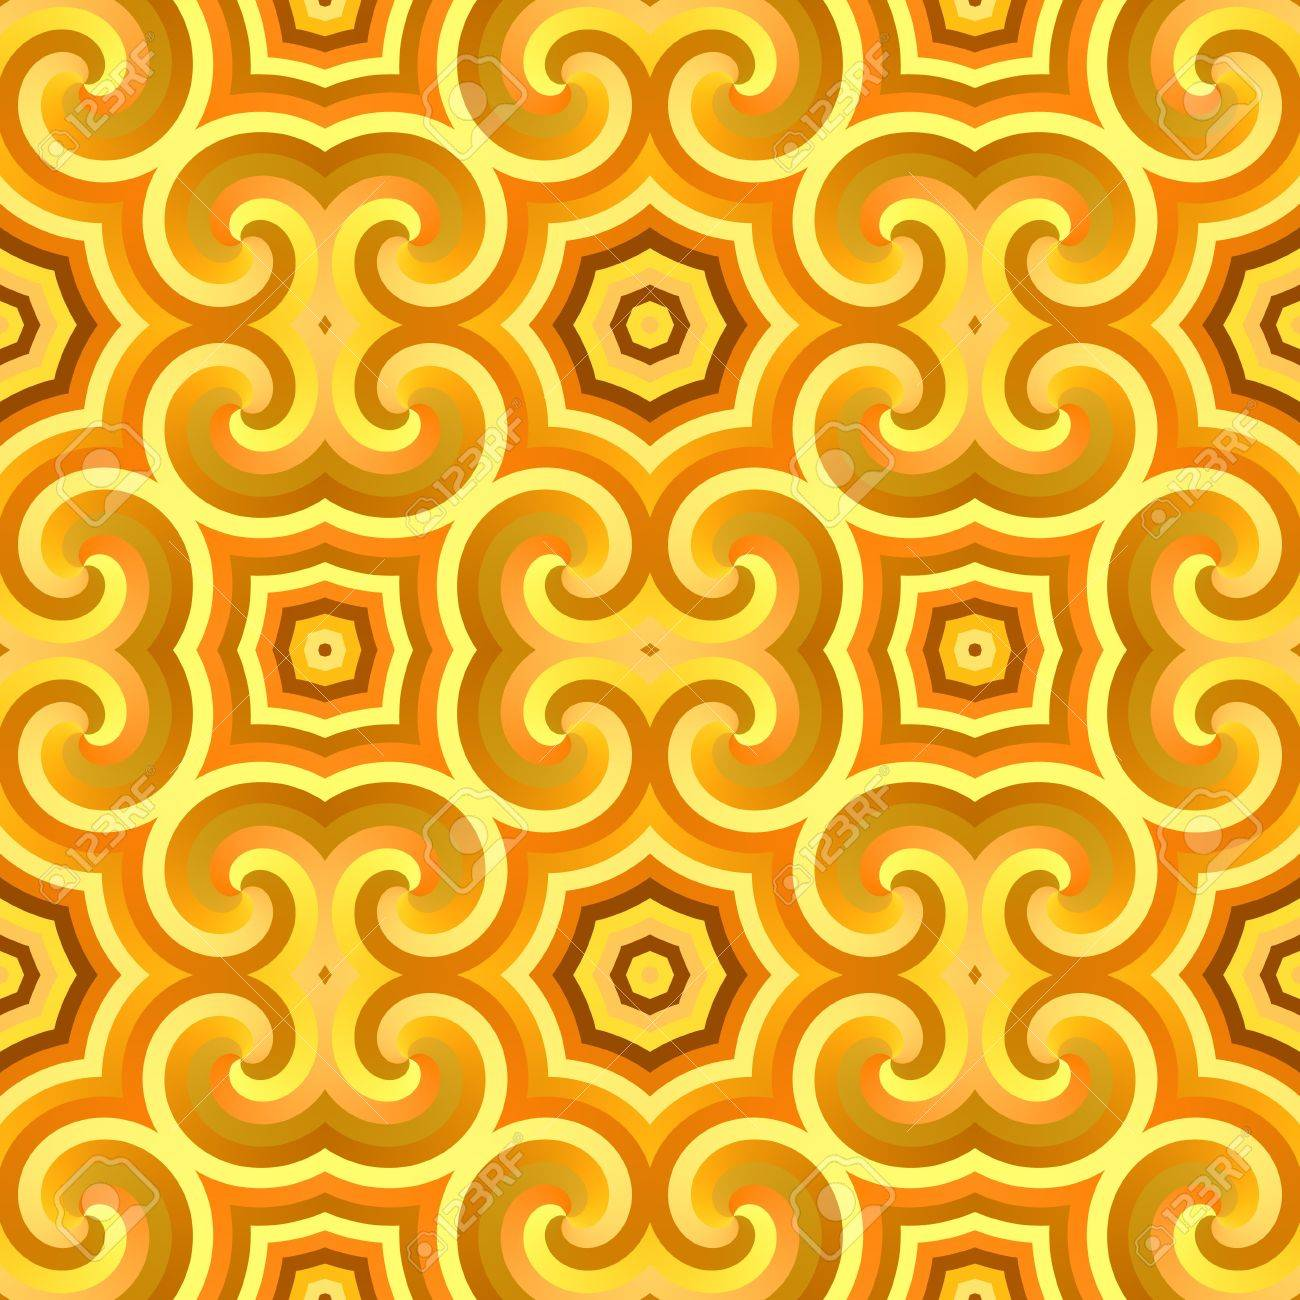 A vintage wallpaper texture that tiles seamlessly as a pattern. Stock Photo - 4181741